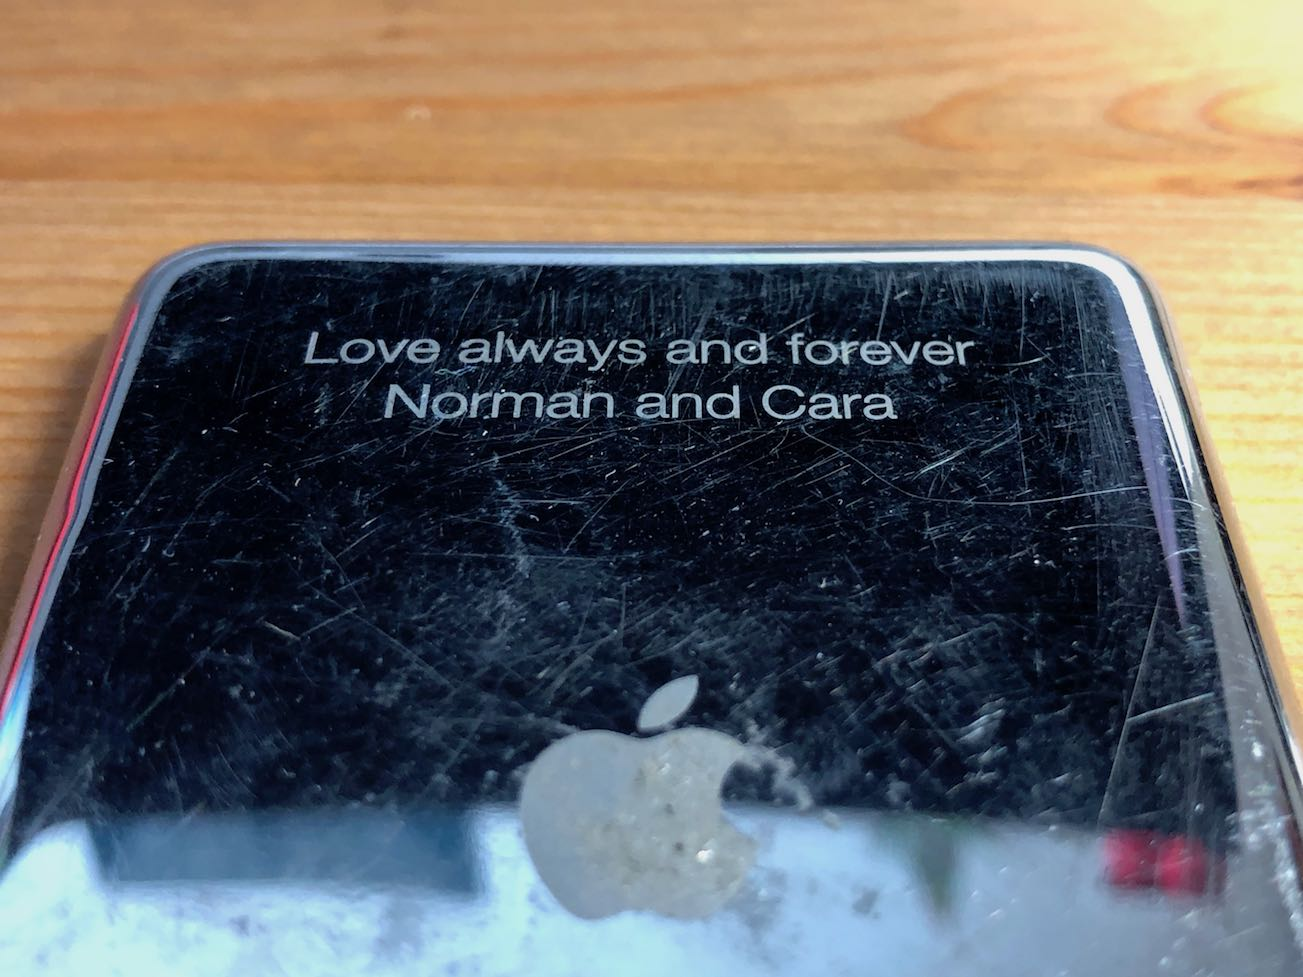 "The back plate of one of the replacement parts I ordered with the etching ""Love always and forever / Norman and Cara"""